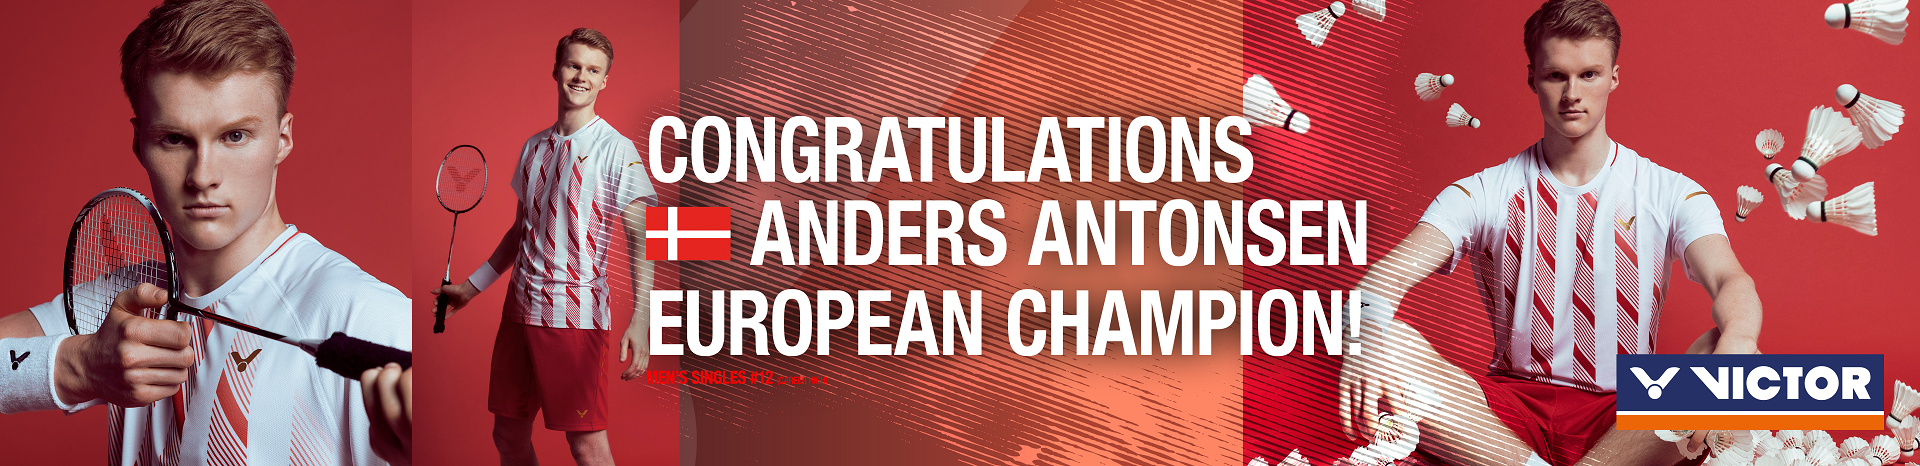 Anders Anto